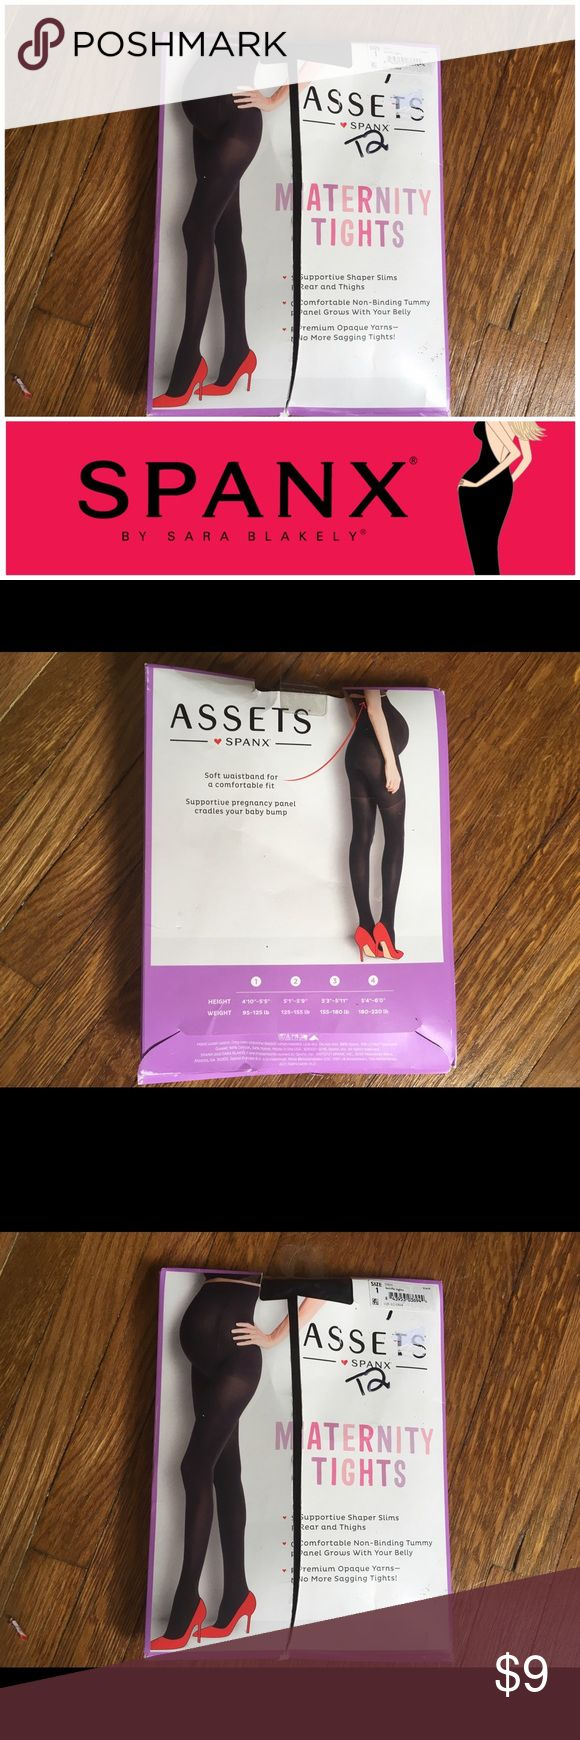 """NEW Maternity Tights Assets by Spanex - Size 1 Brand new, maternity tights in black, Assets by Spanex. Size 1 - between height 4'10"""" - 5'5"""" (95 - 125 lbs). Perfect for under clothes for extra support! Originally bought for a client, I'm currently cleaning out my client closets. Open to offers, especially on bundles. I give 15% off bundles of 3 or more. I give a free gift with every purchase! Your purchase goes towards the non-profit organization I'm founding. Come back often as I'm posting…"""